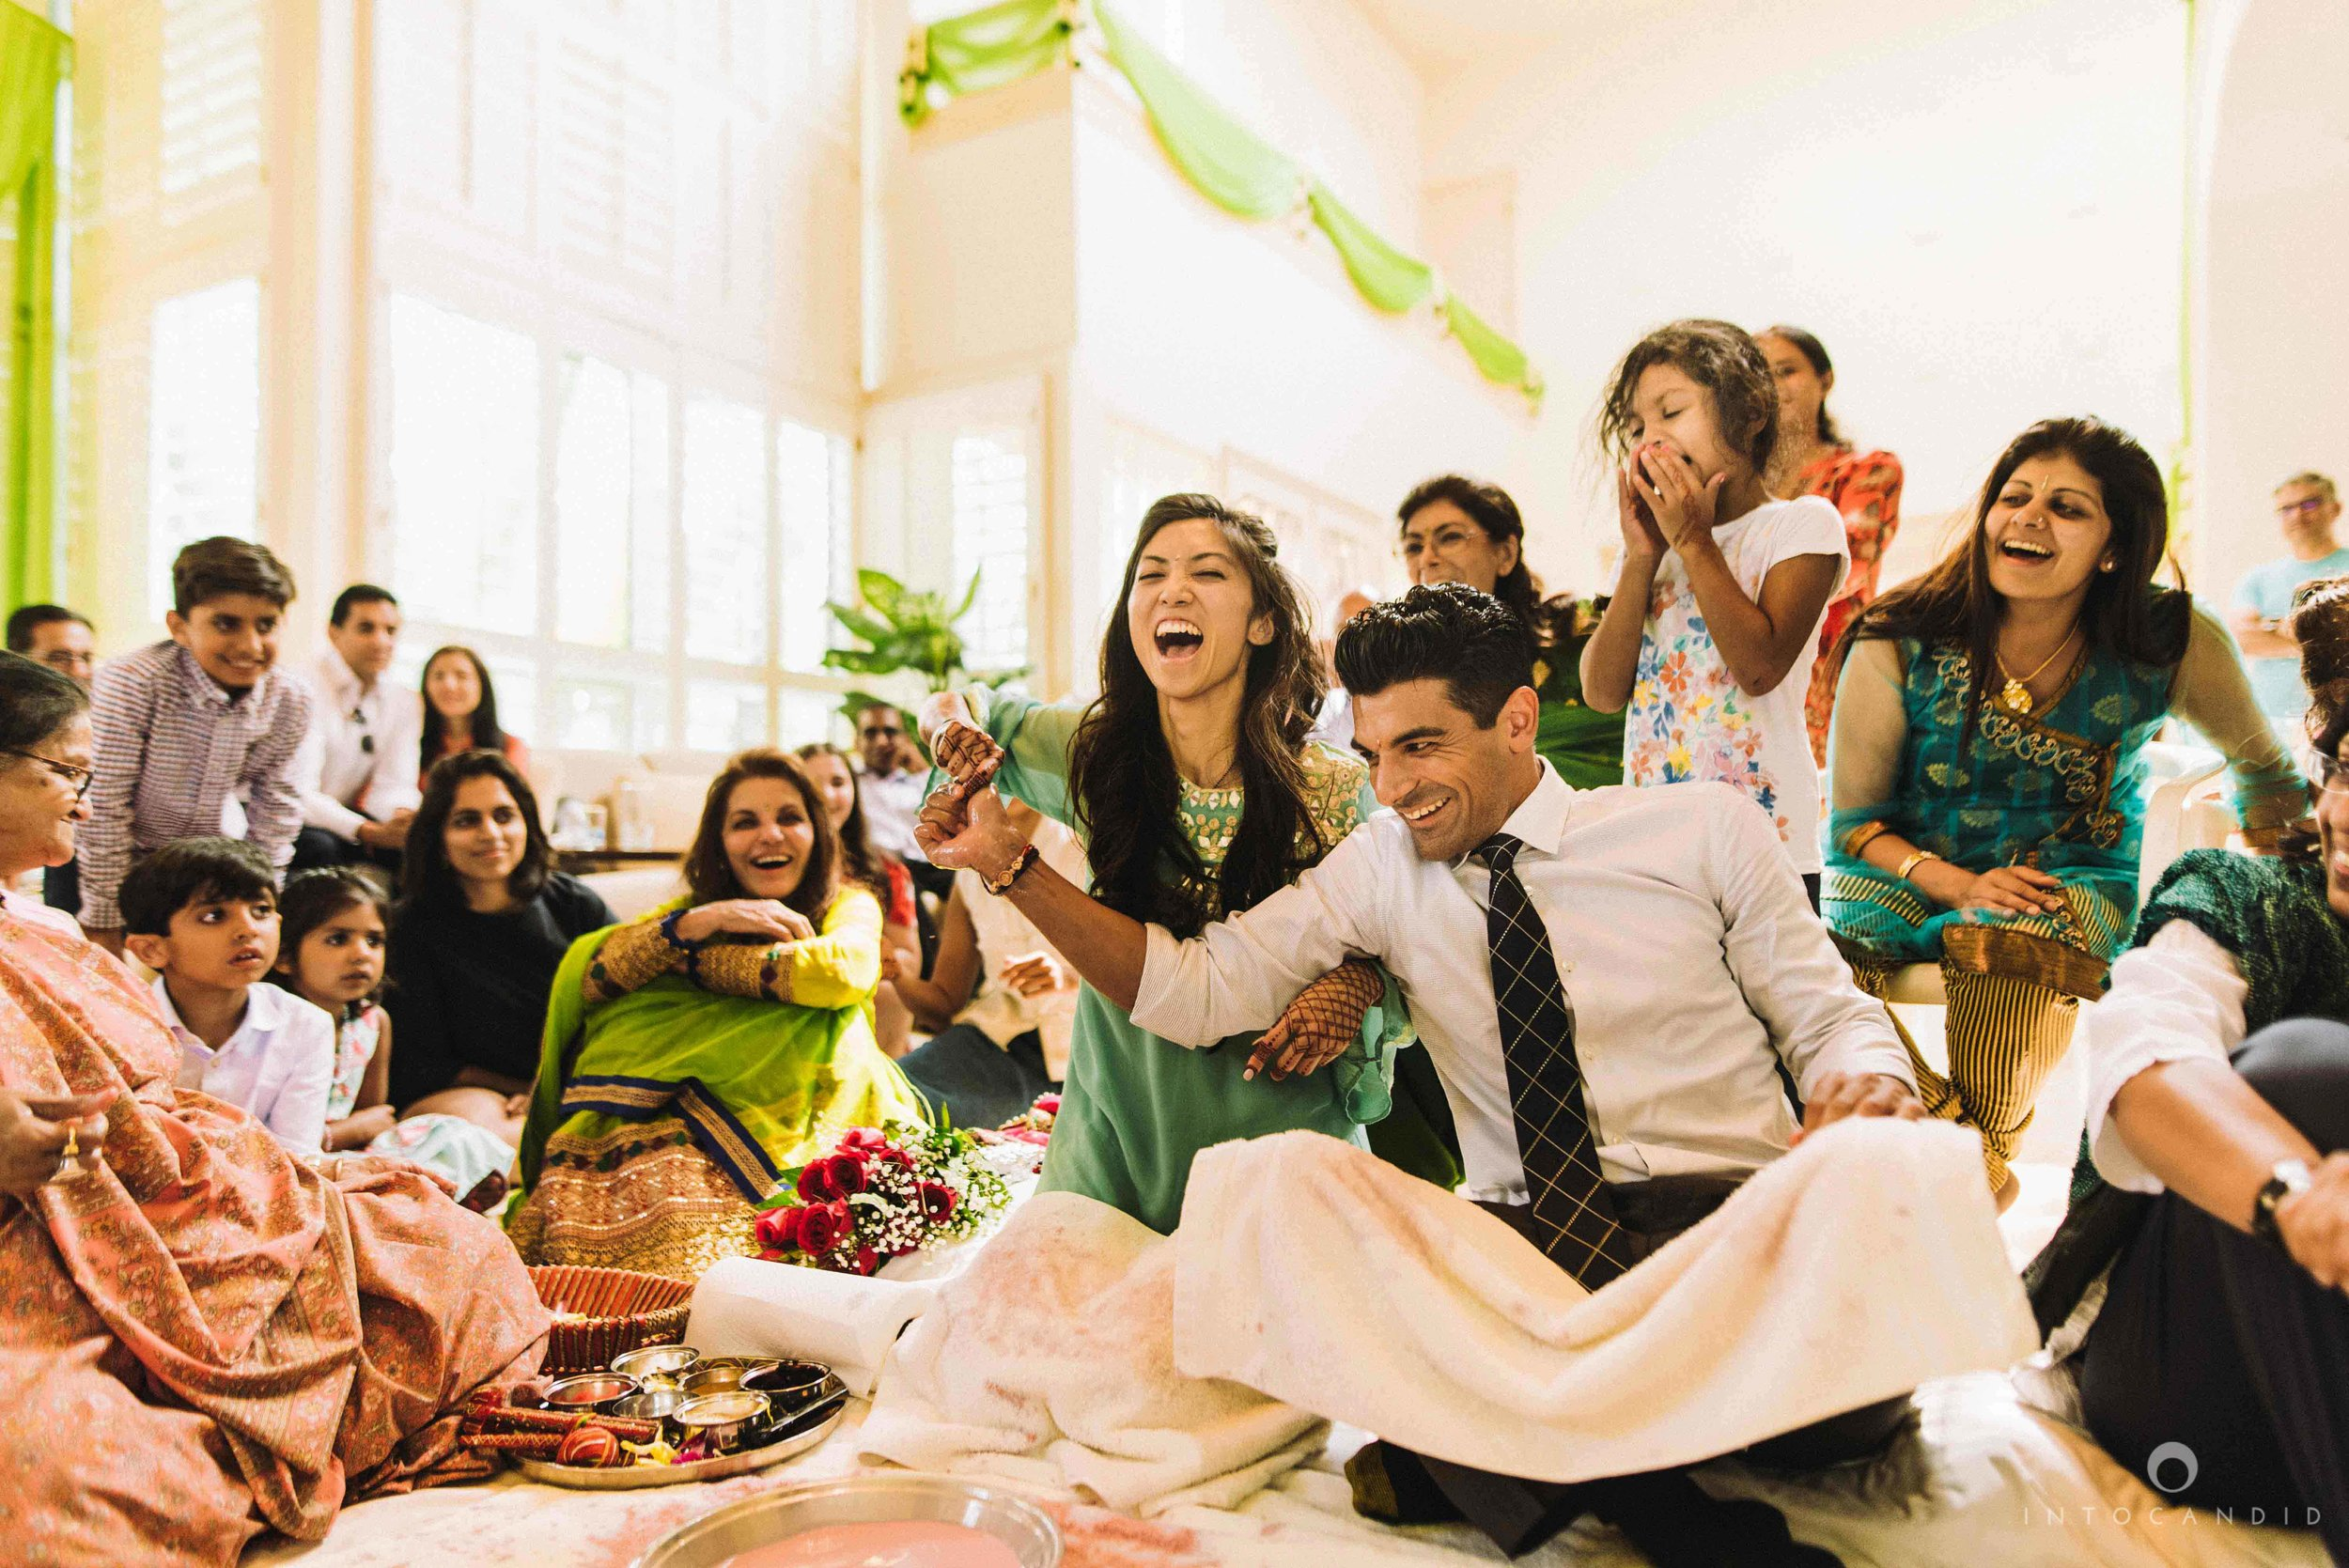 LosAngeles_Indian_Wedding_Photographer_AS_175.jpg